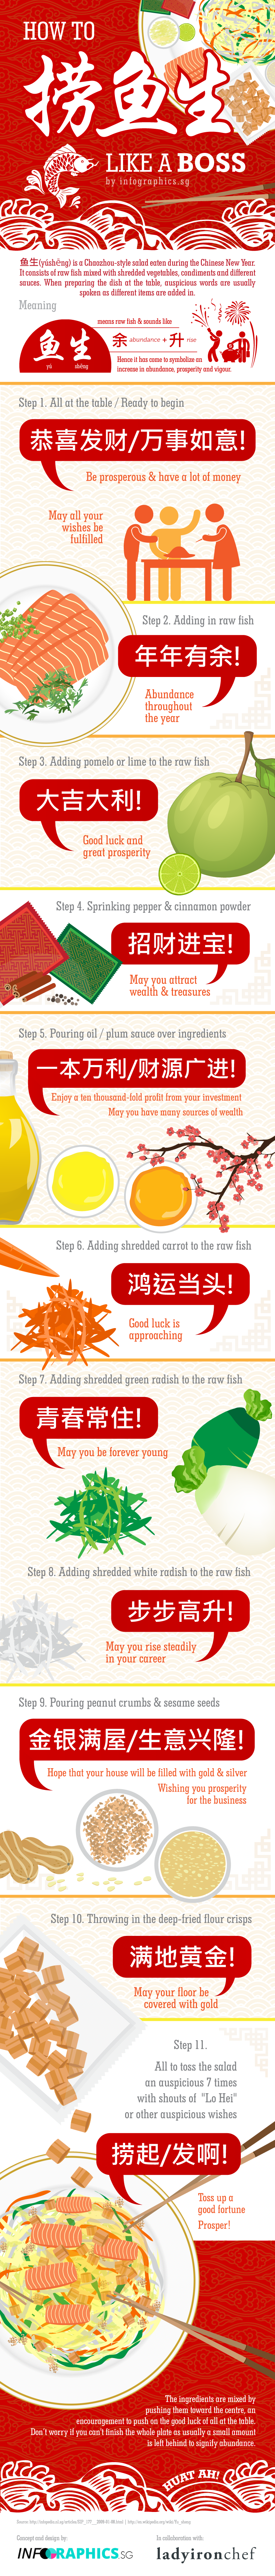 Chinese new year auspicious phrases during yu sheng lo hei we hope you find this post useful do share with your friends relatives and colleagues for their lo hei sessions too you may also like to check out my m4hsunfo